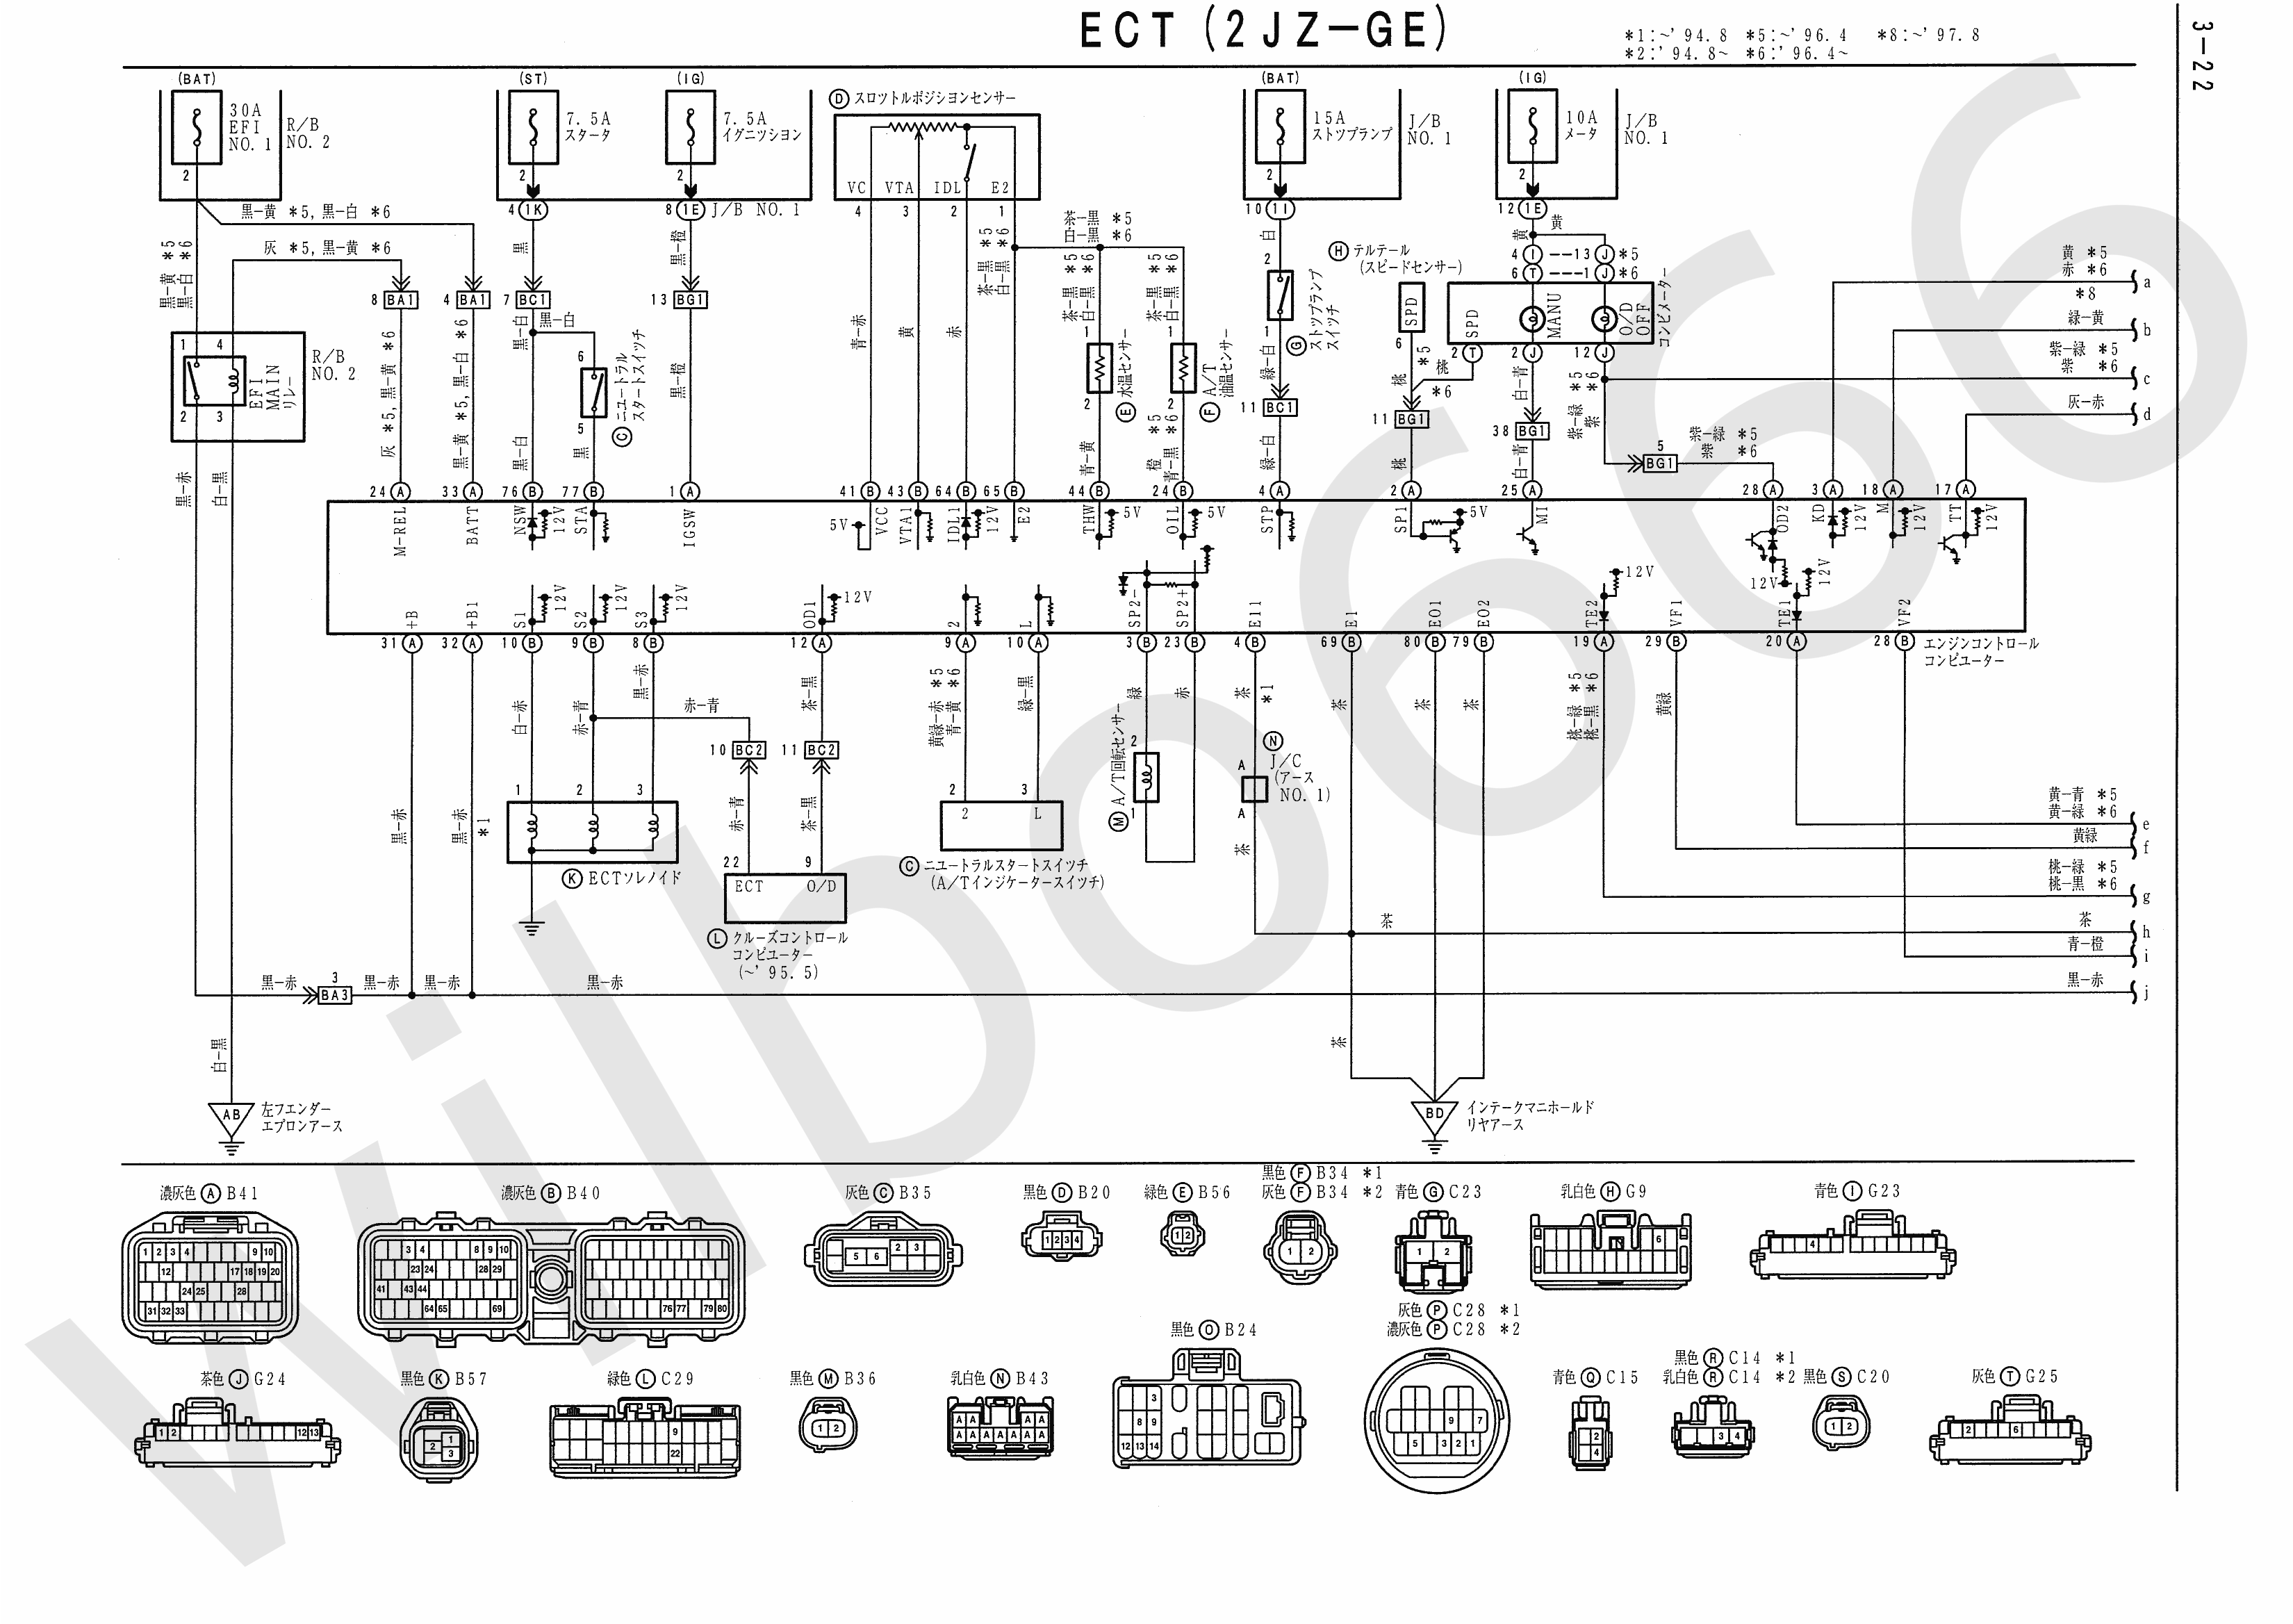 1973 240z Wiring Diagram 1982 280Zx Wiring Diagram Wiring